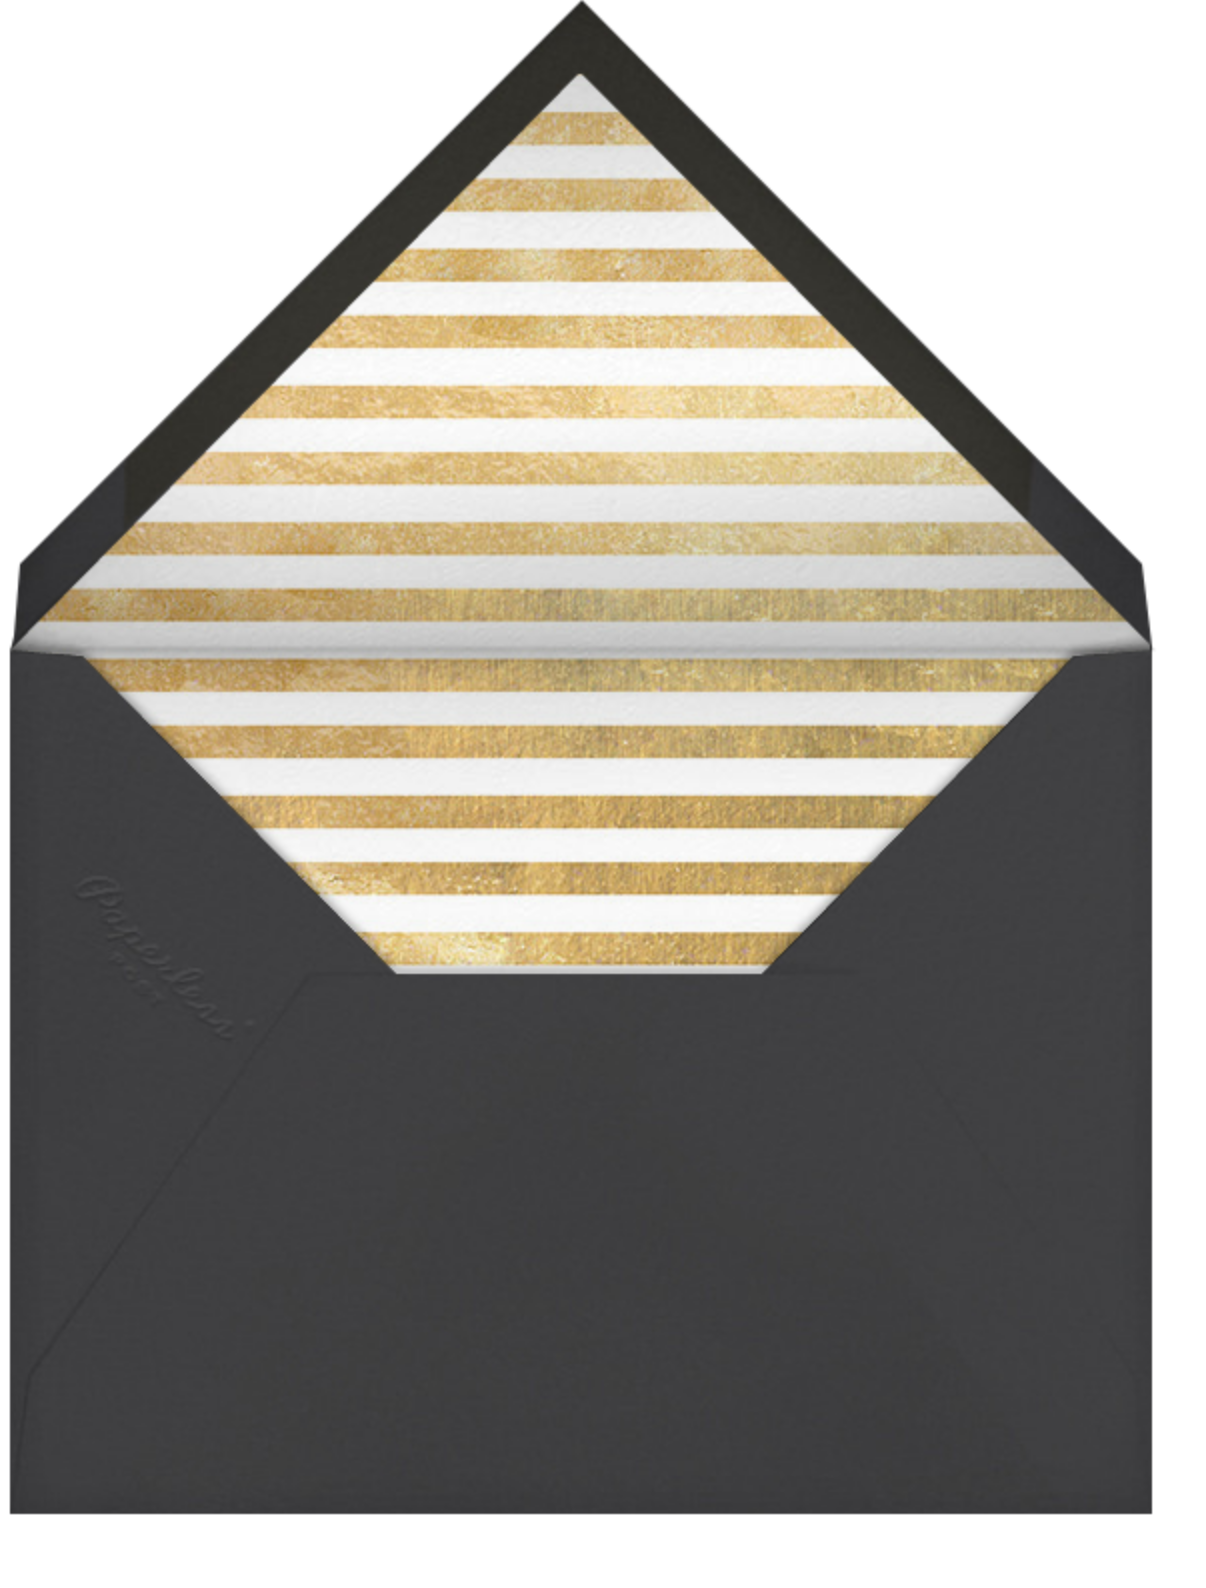 City Lights II (Stationery) - Slate/Gold - kate spade new york - Personalized stationery - envelope back